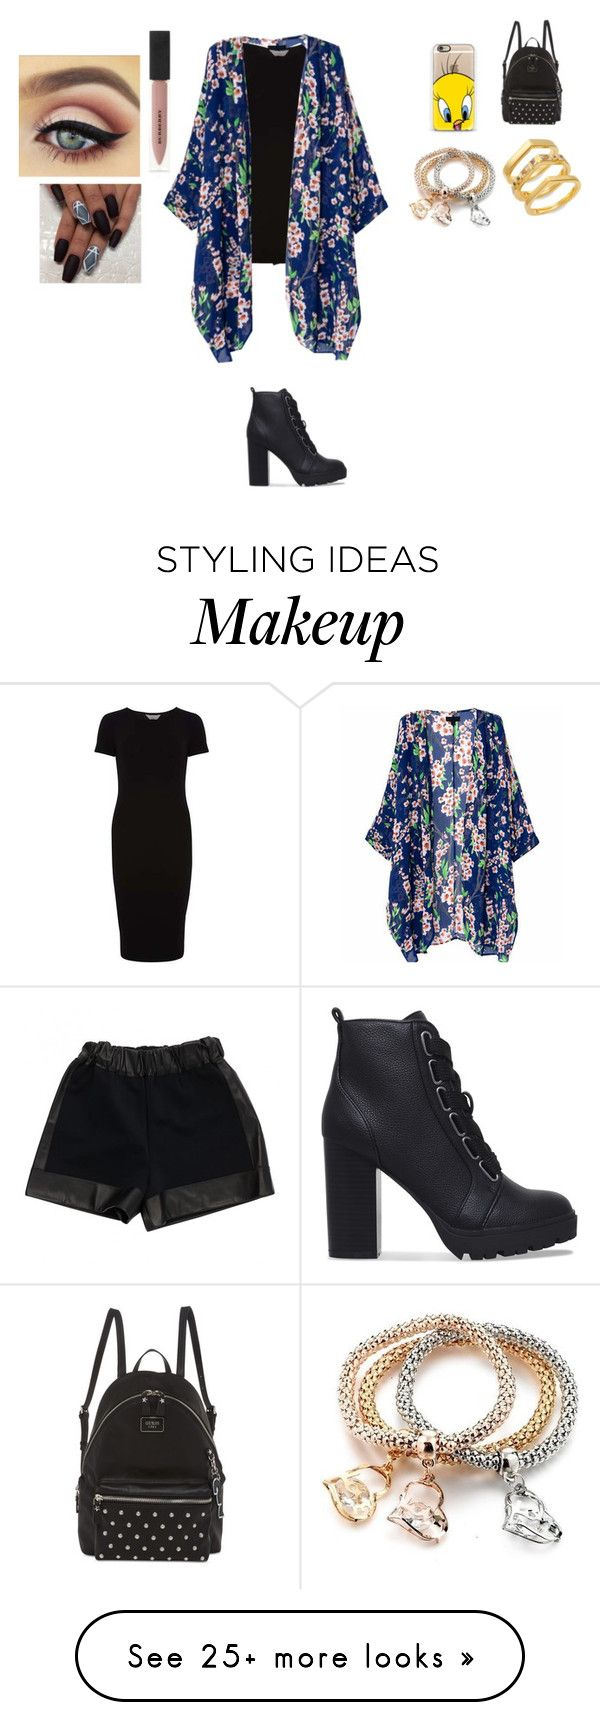 """Floral"" by mayylovesnobody on Polyvore featuring Casetify, GUESS, Givenchy, Dorothy Perkins, Burberry and Elizabeth and James"